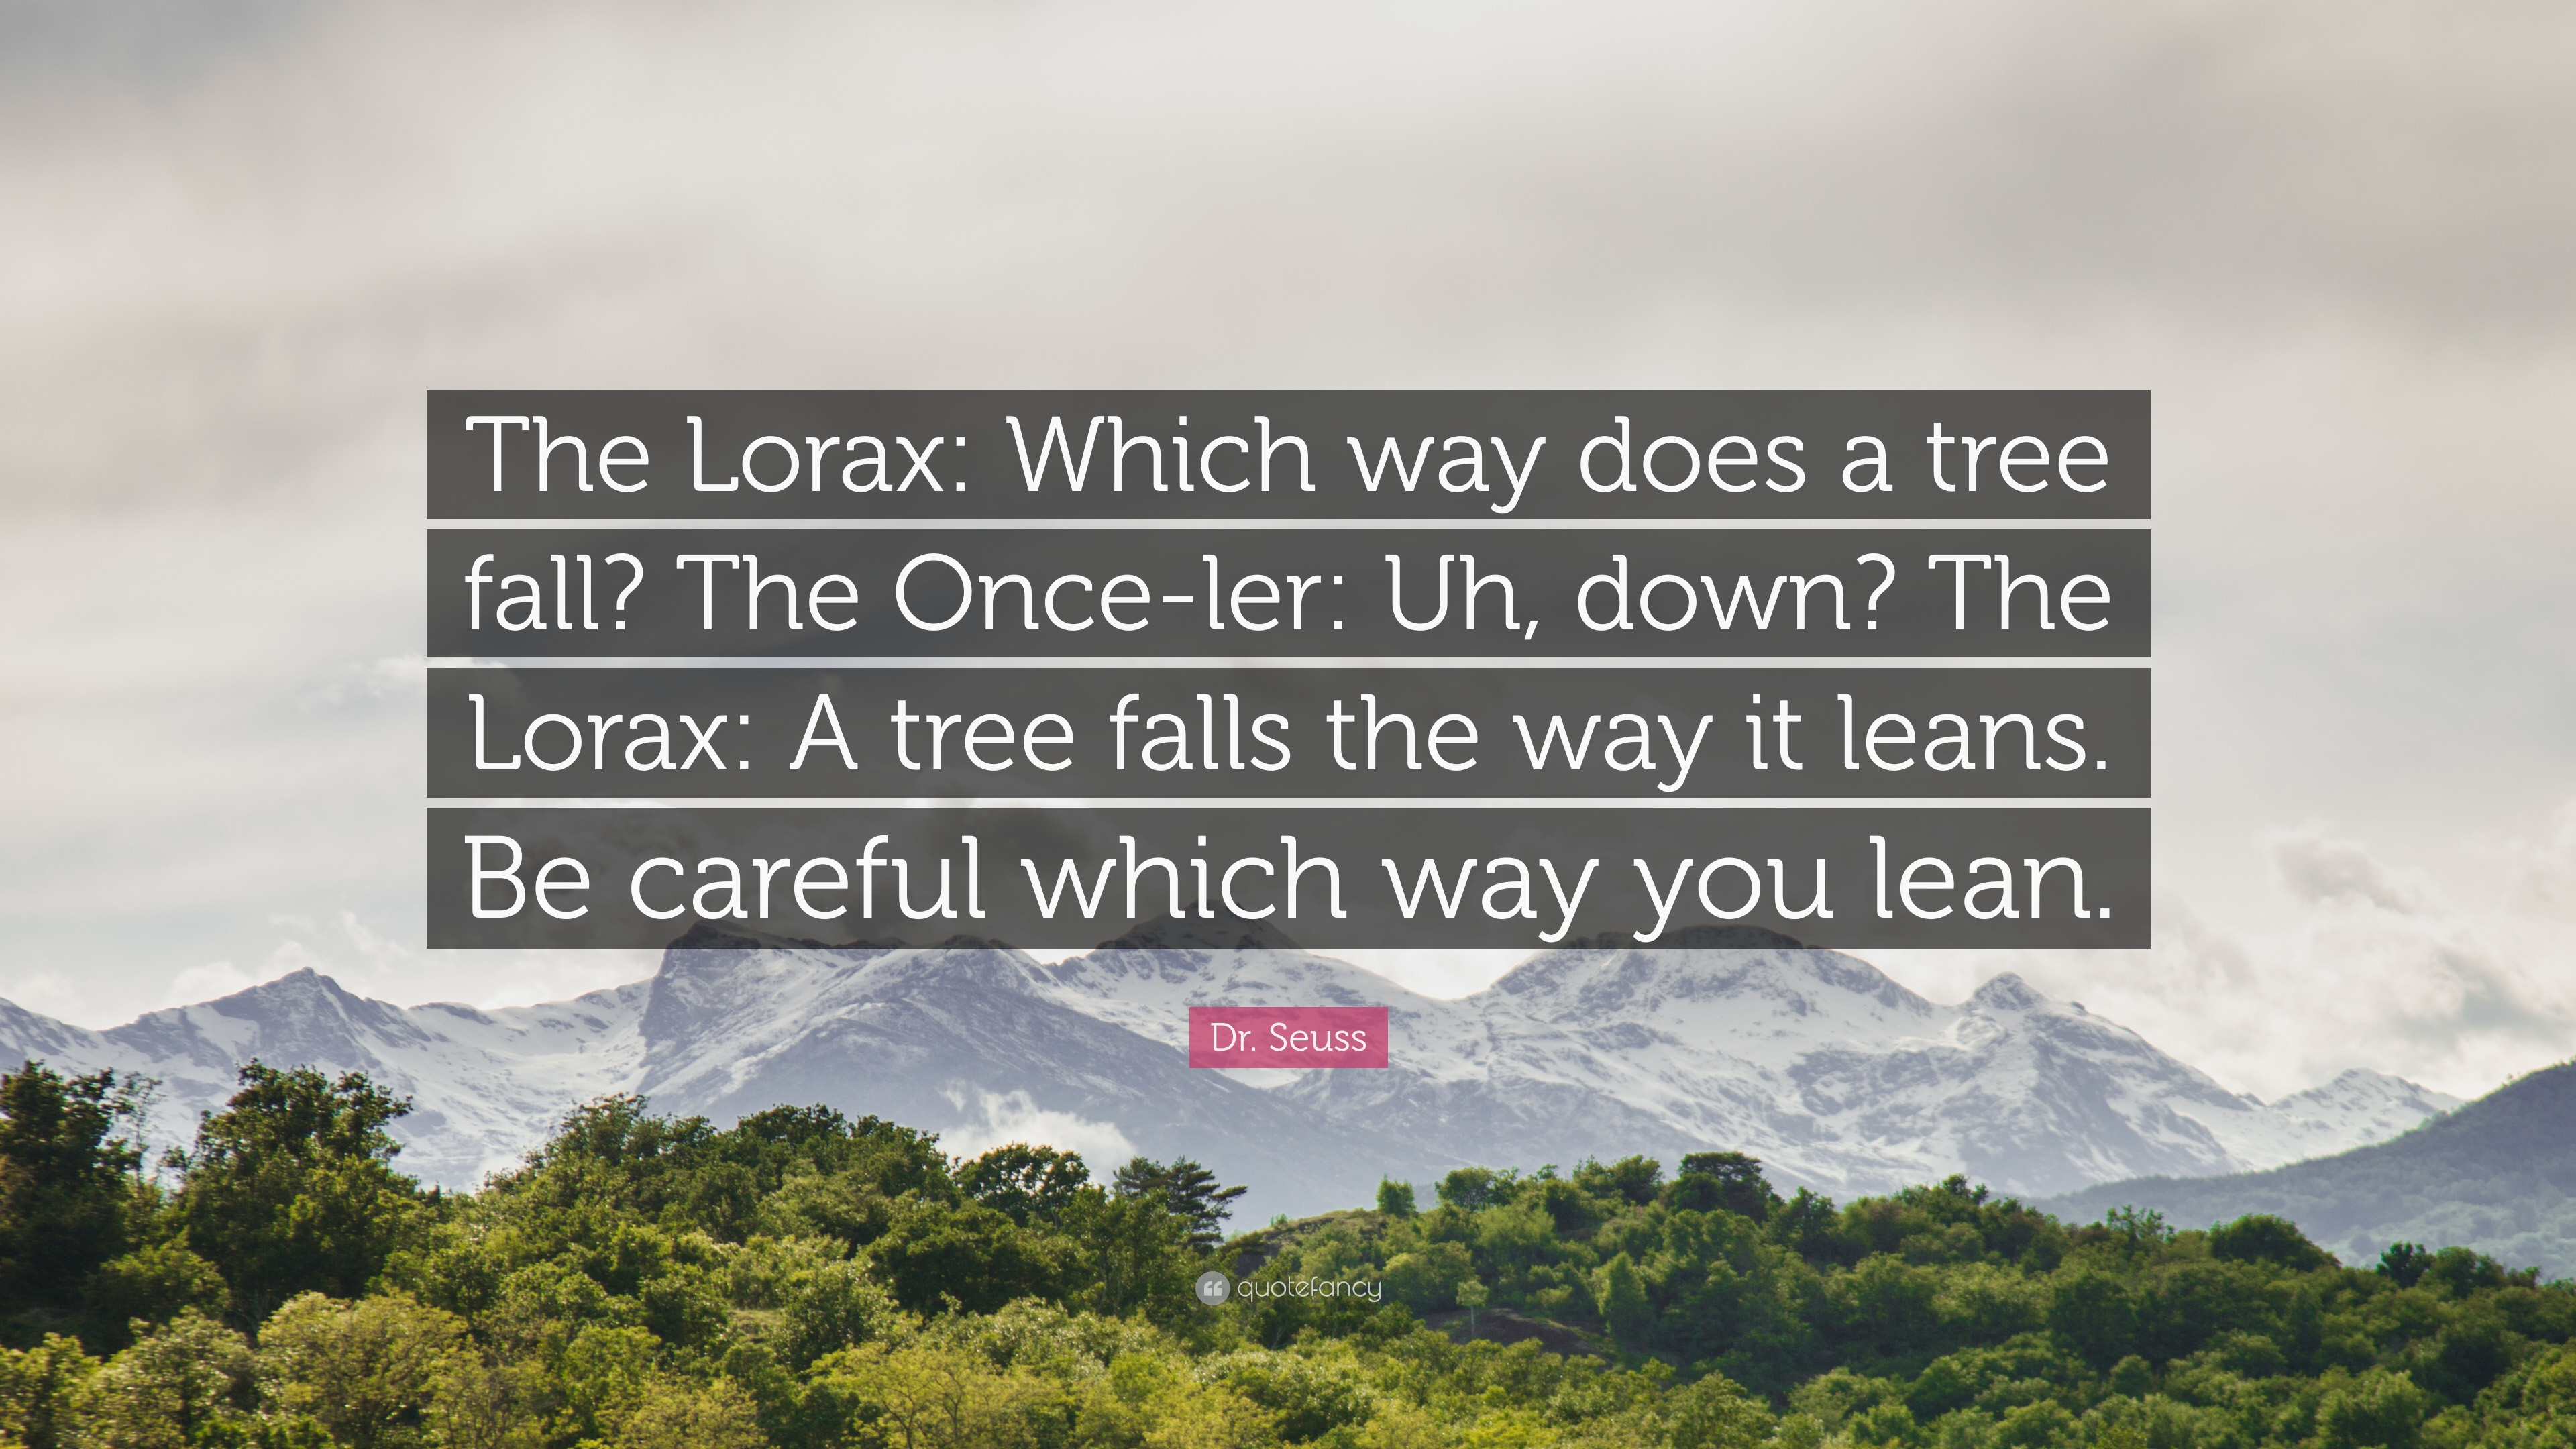 Dr Seuss Quote The Lorax Which Way Does A Tree Fall The Once Ler Uh Down The Lorax A Tree Falls The Way It Leans Be Careful Whic 12 Wallpapers Quotefancy